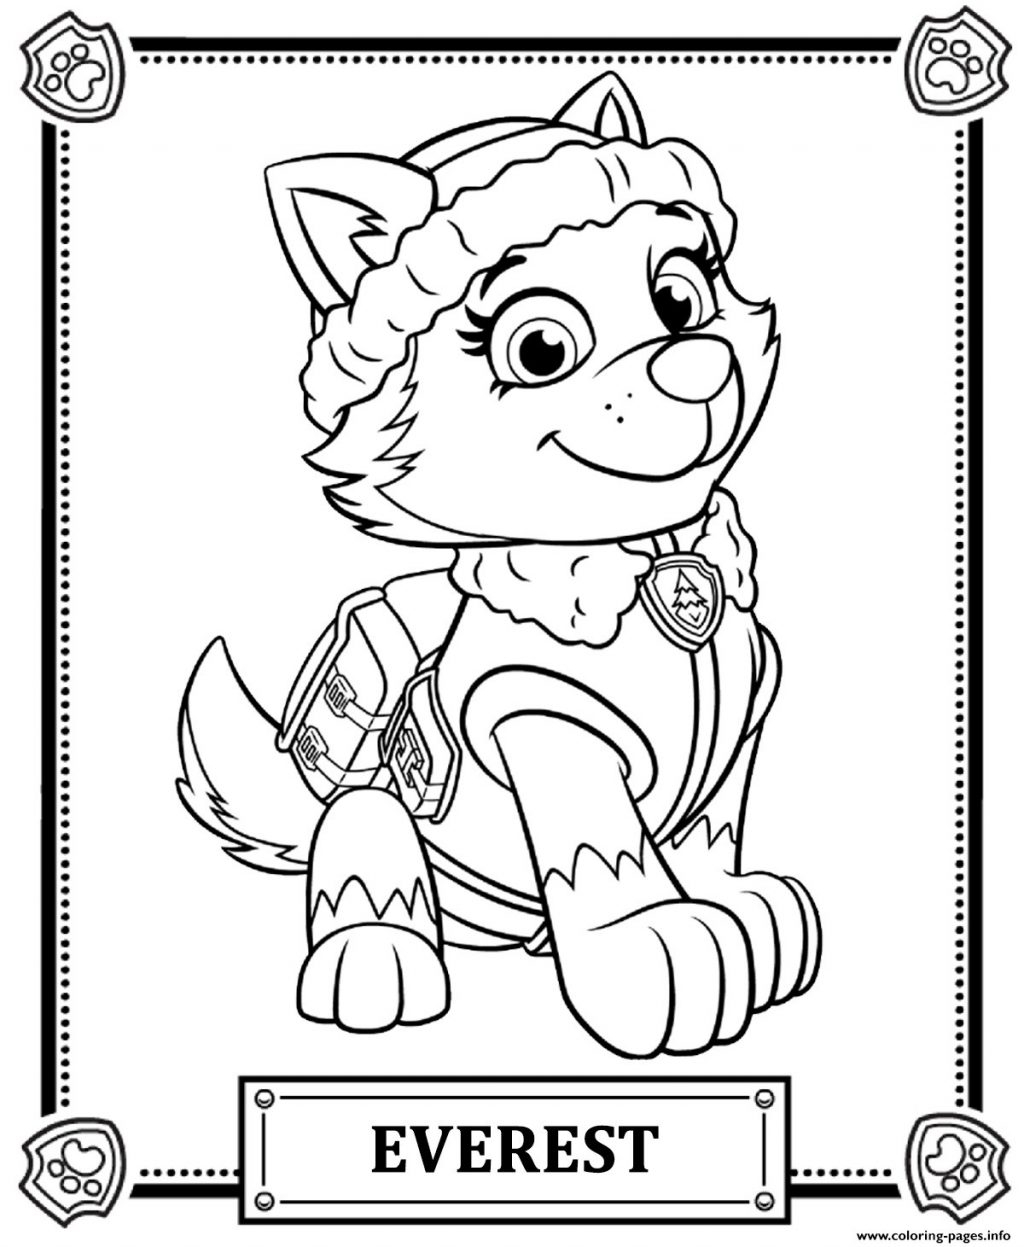 picture about Paw Patrol Coloring Pages Printable titled Marshall Paw Patrol Coloring Web page Coloring Internet pages Paw Patrol